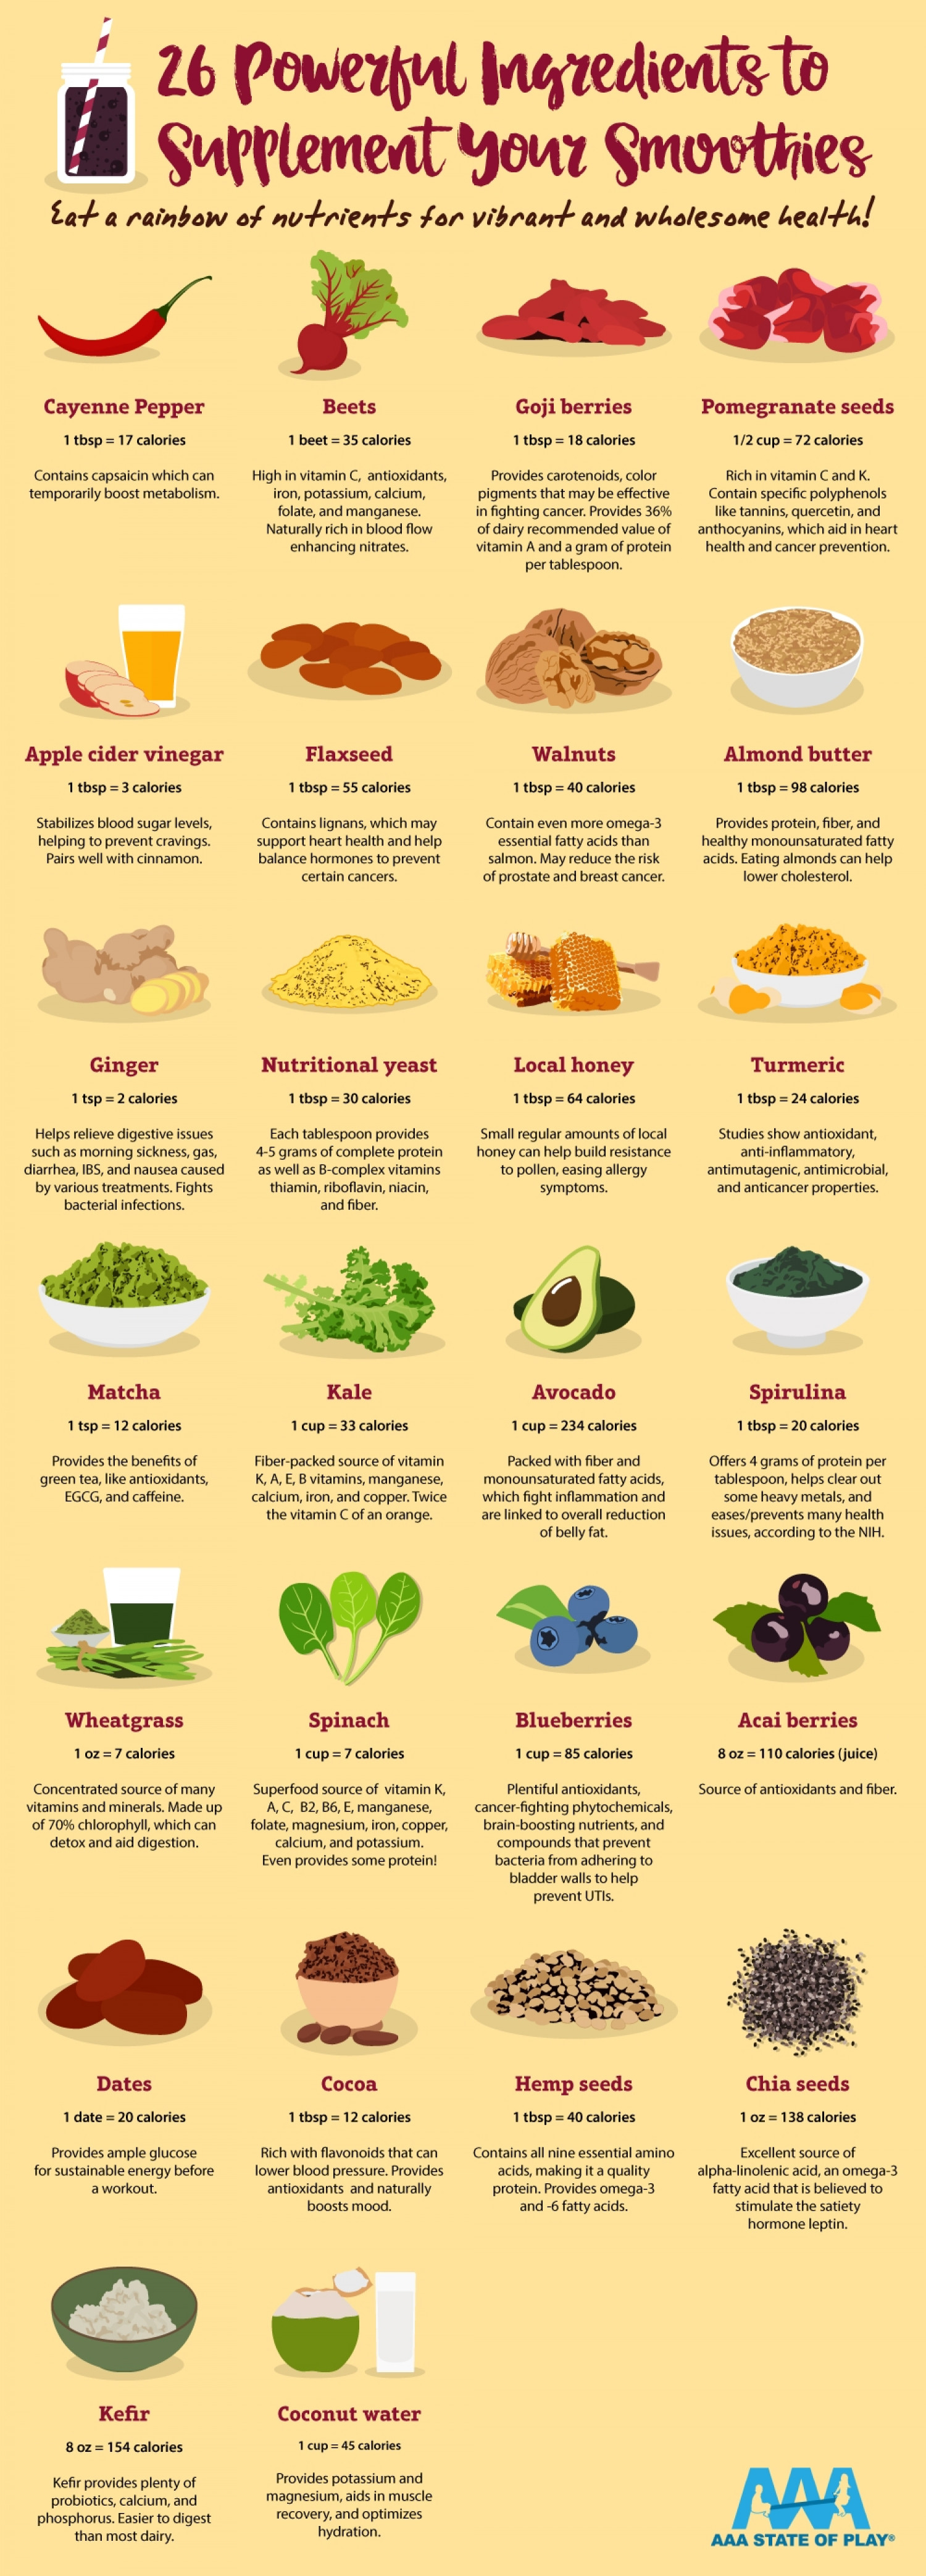 26 Powerful Ingredients to Supplement Your Smoothies Infographic